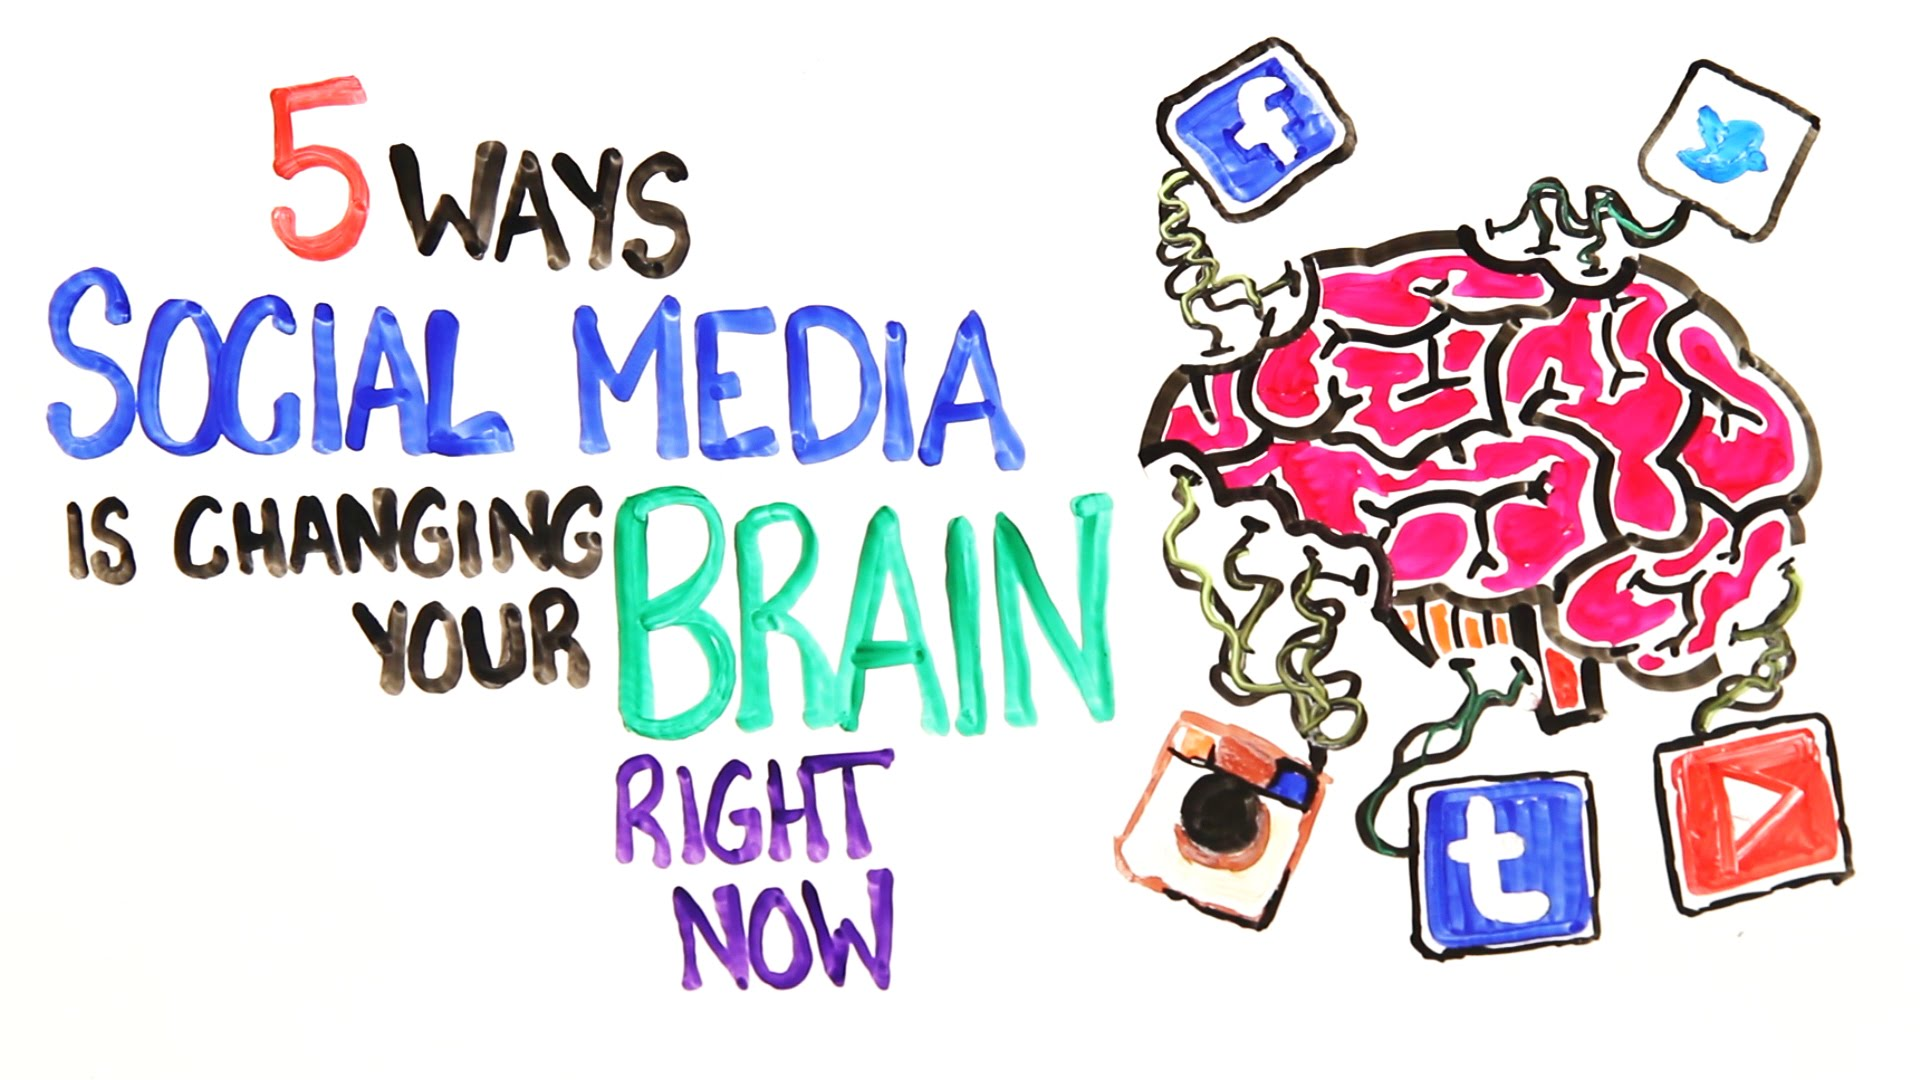 AsapSCIENCE Explains the Crazy Ways Social Media Can Change Our Brain, Body, and Life